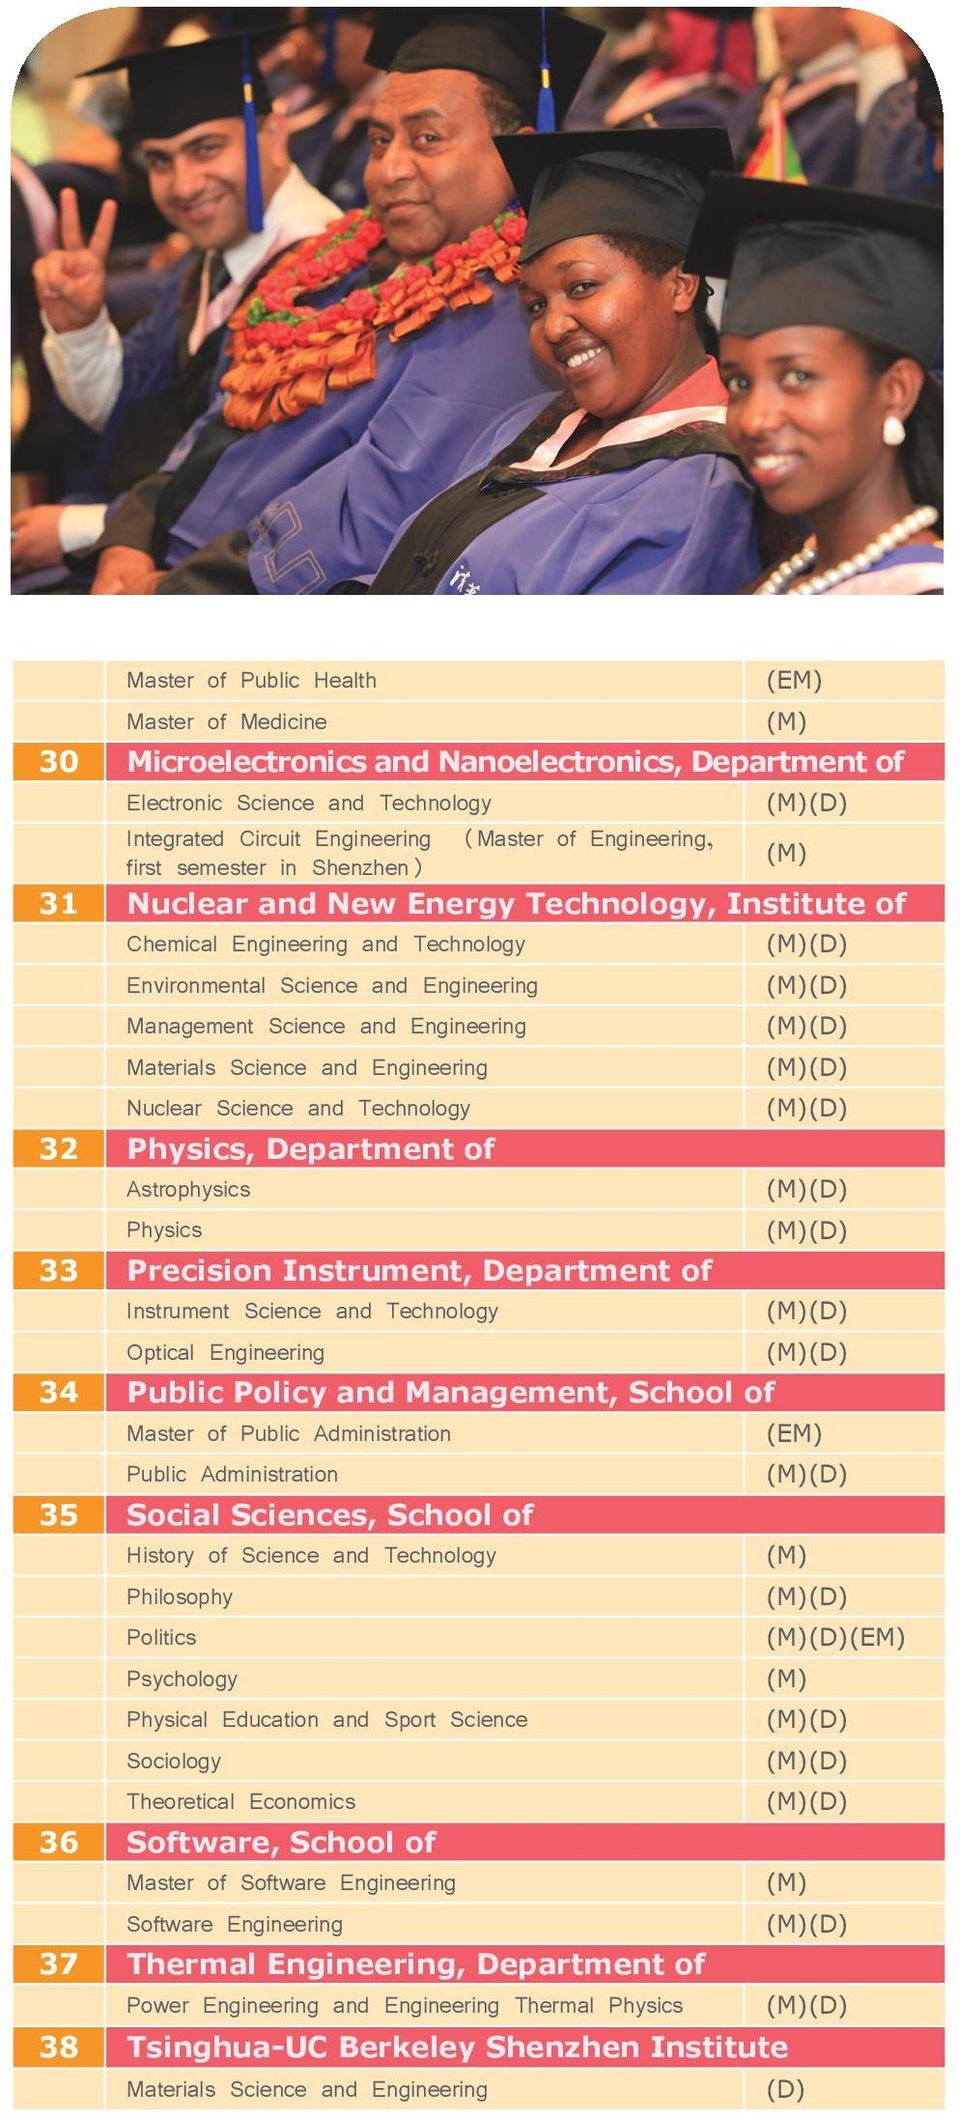 Engineering and Engineering Thermal 16 Chemical Engineering, Department of Chemistry, Department of 17, Department of Geodesy and Survey Engineering Project Management-Master of Engineering(ICPM)